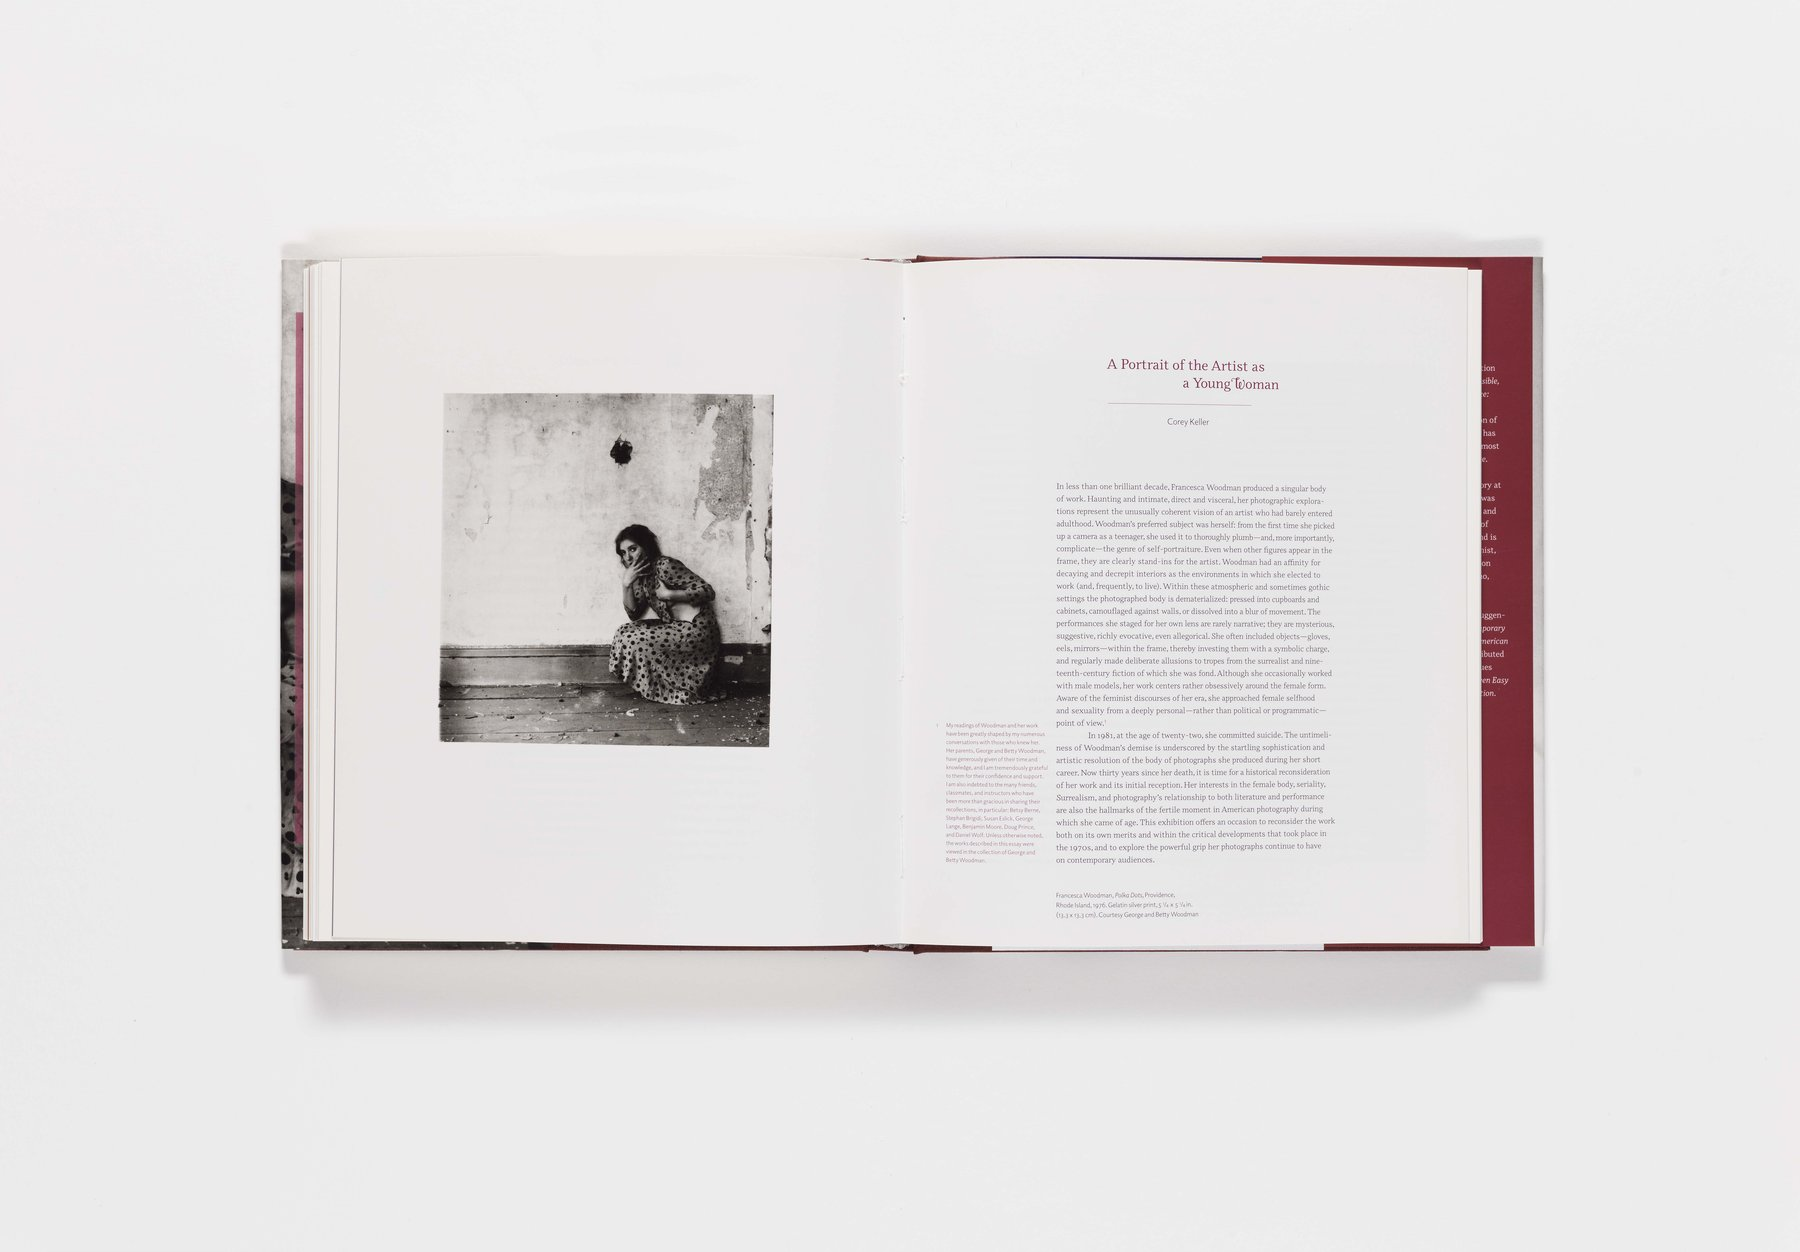 Francesca Woodman publication pages 168-169